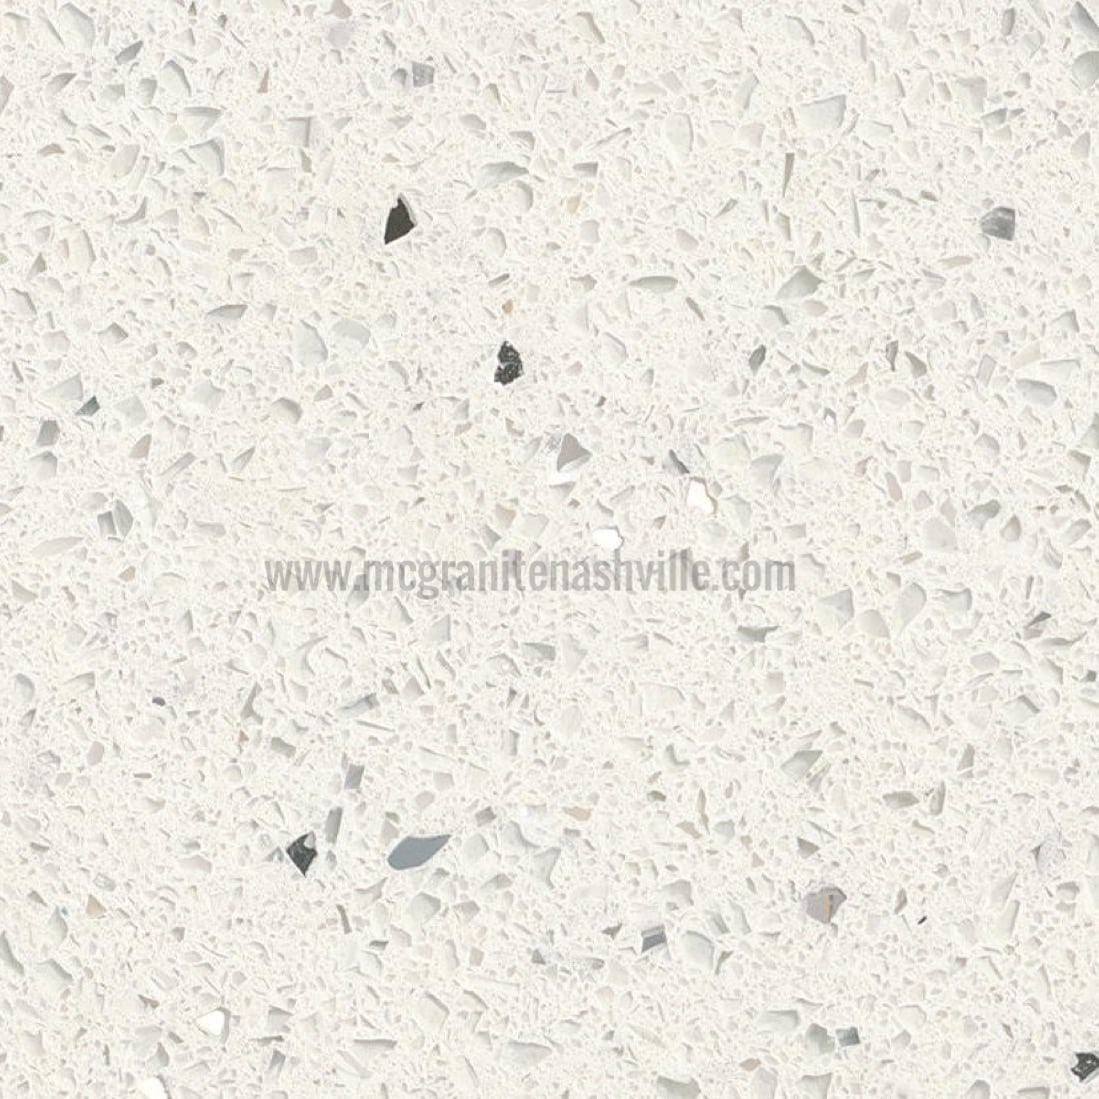 Sparkling White Quartz